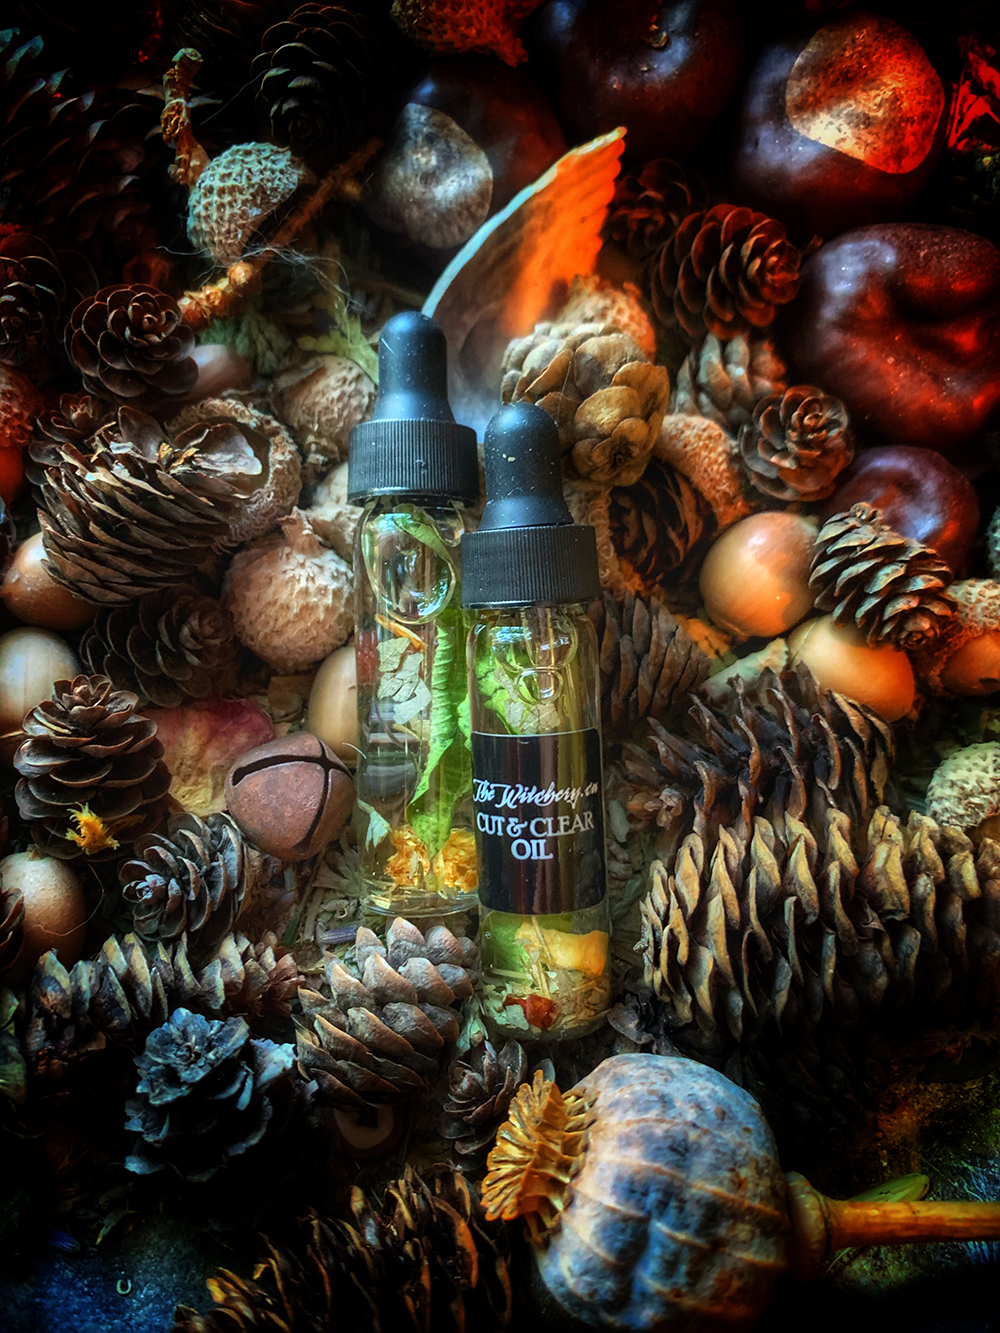 Cut & Clear Ritual Oil